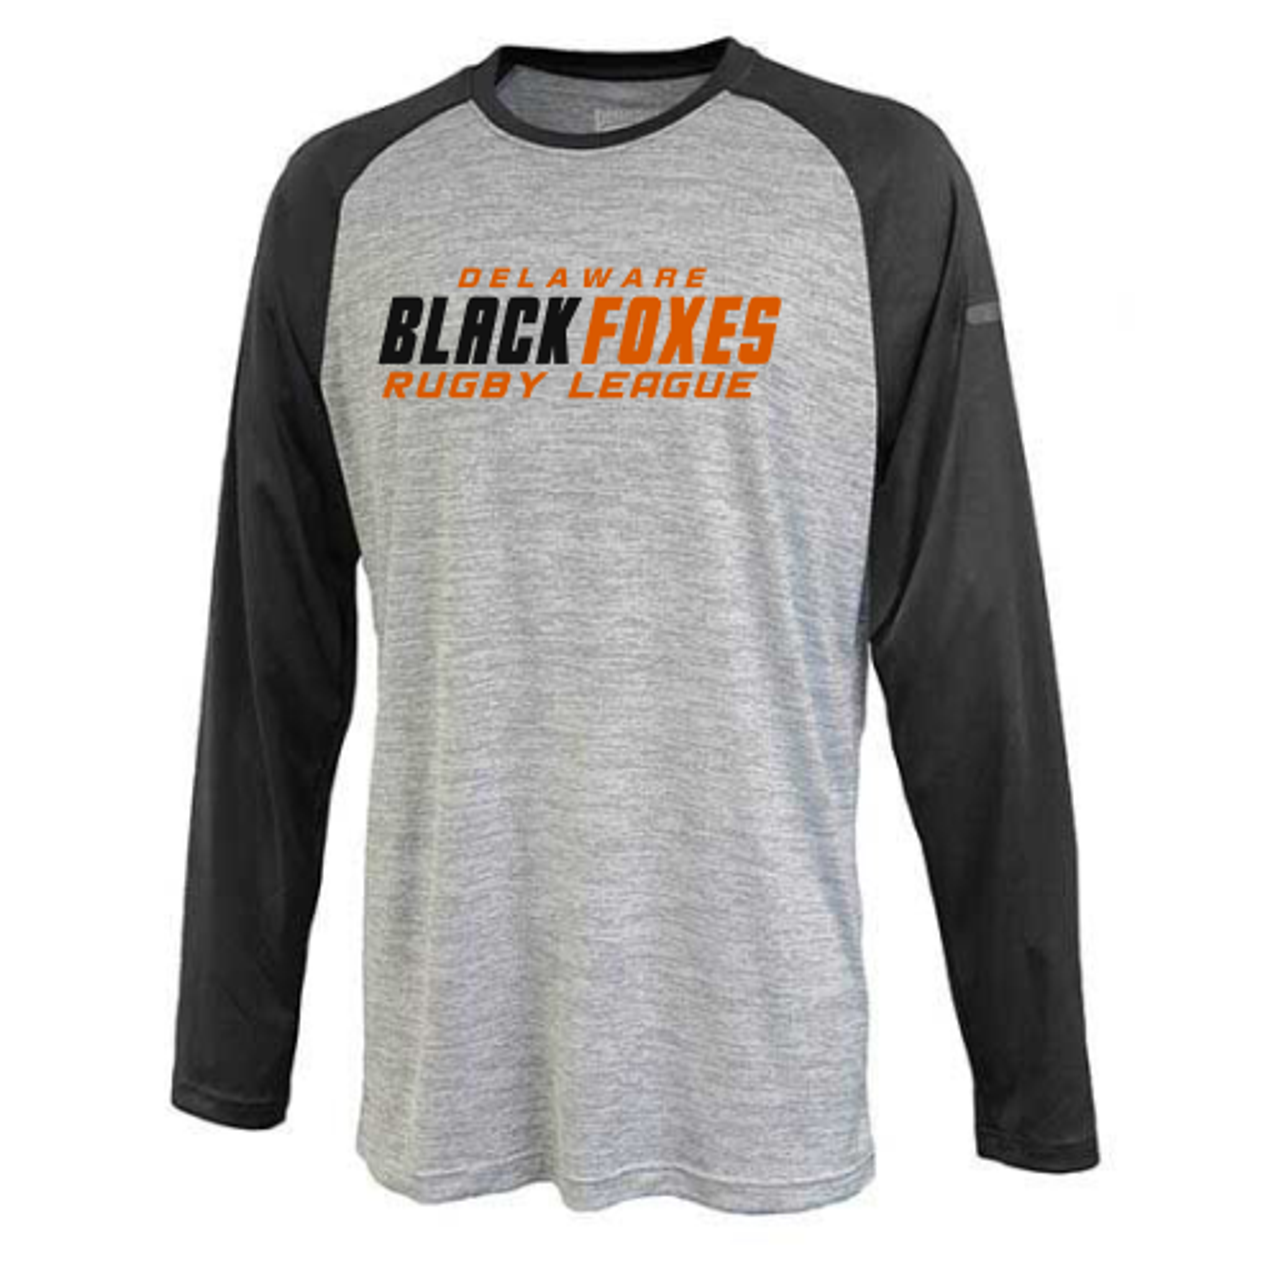 Black Foxes LS Performance Tee